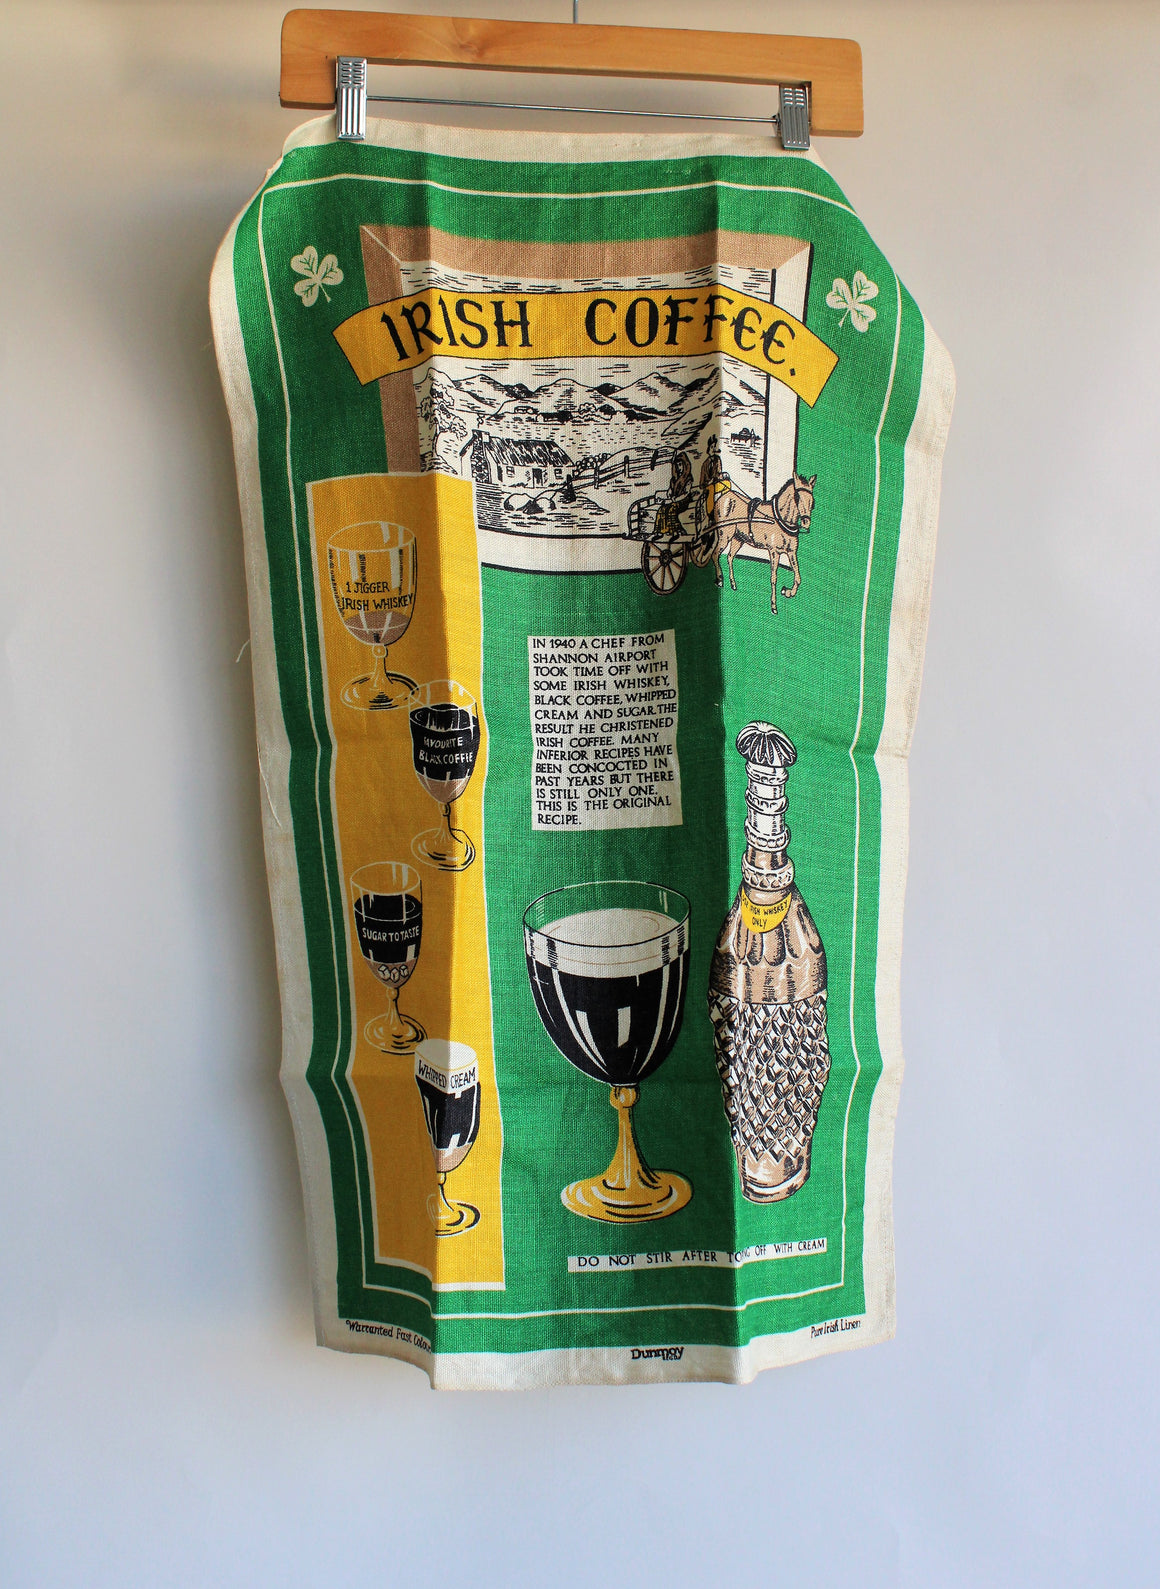 Vintage 1950s 1960s Irish Coffee Linen Tea Towel by Dunmoy